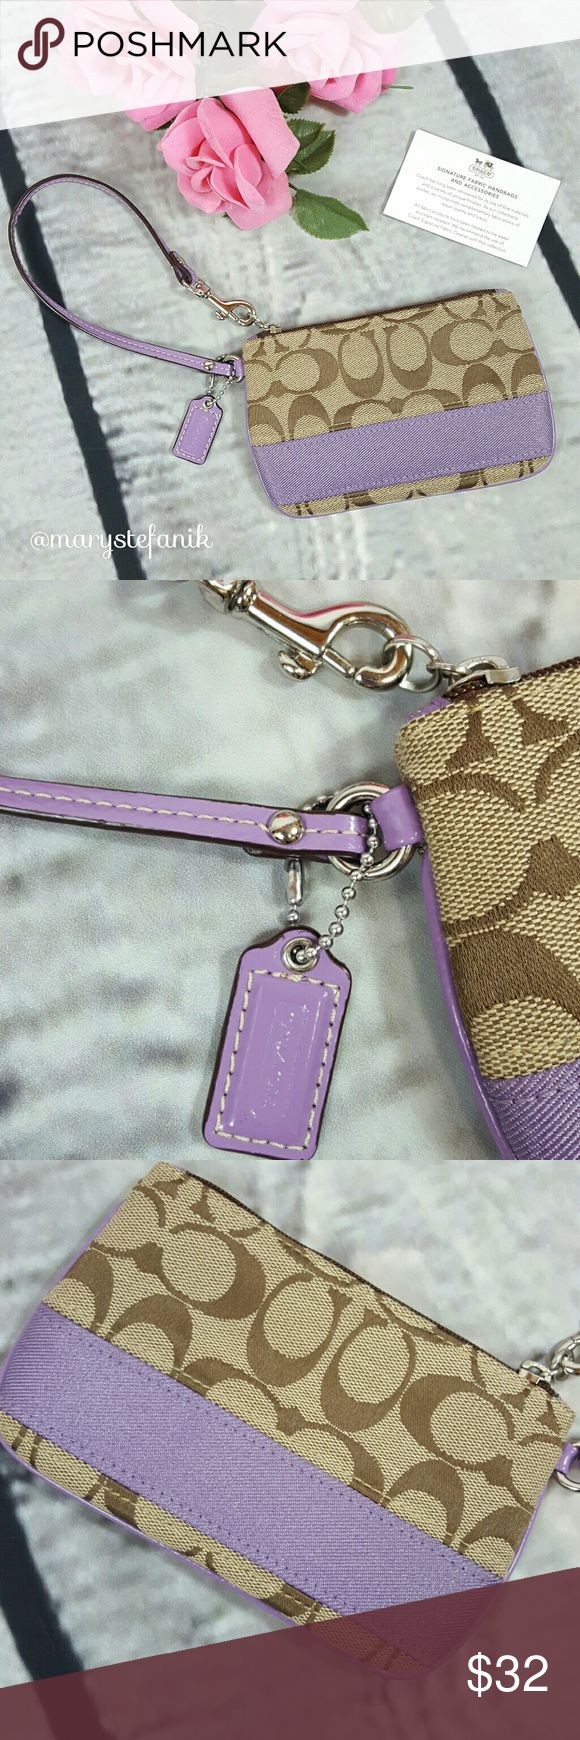 Coach Signature Purple Stripe Wristlet Coach Signature Purple Stripe Wristlet in excellent used condition. Like new and includes card.  Please let me know if you have any questions. Happy Poshing! Coach Bags Clutches & Wristlets